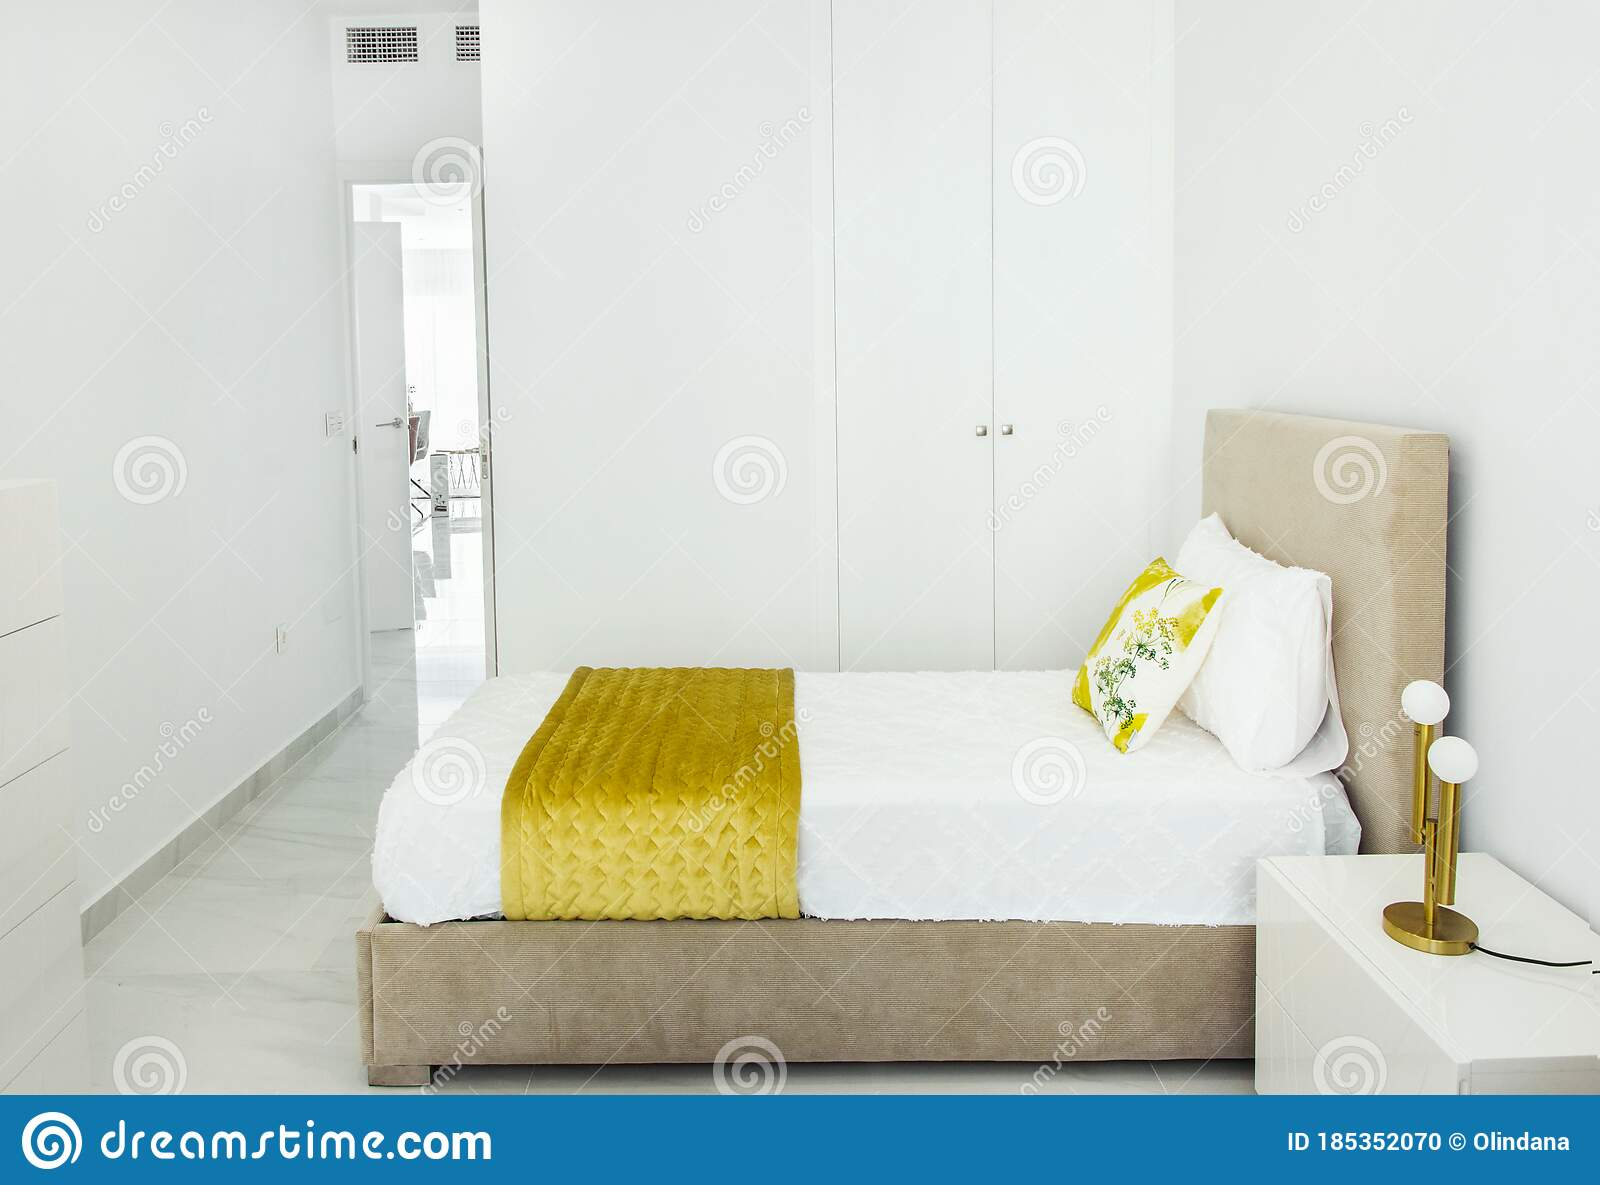 4 305 Yellow Interior Design Modern Bedroom Photos Free Royalty Free Stock Photos From Dreamstime